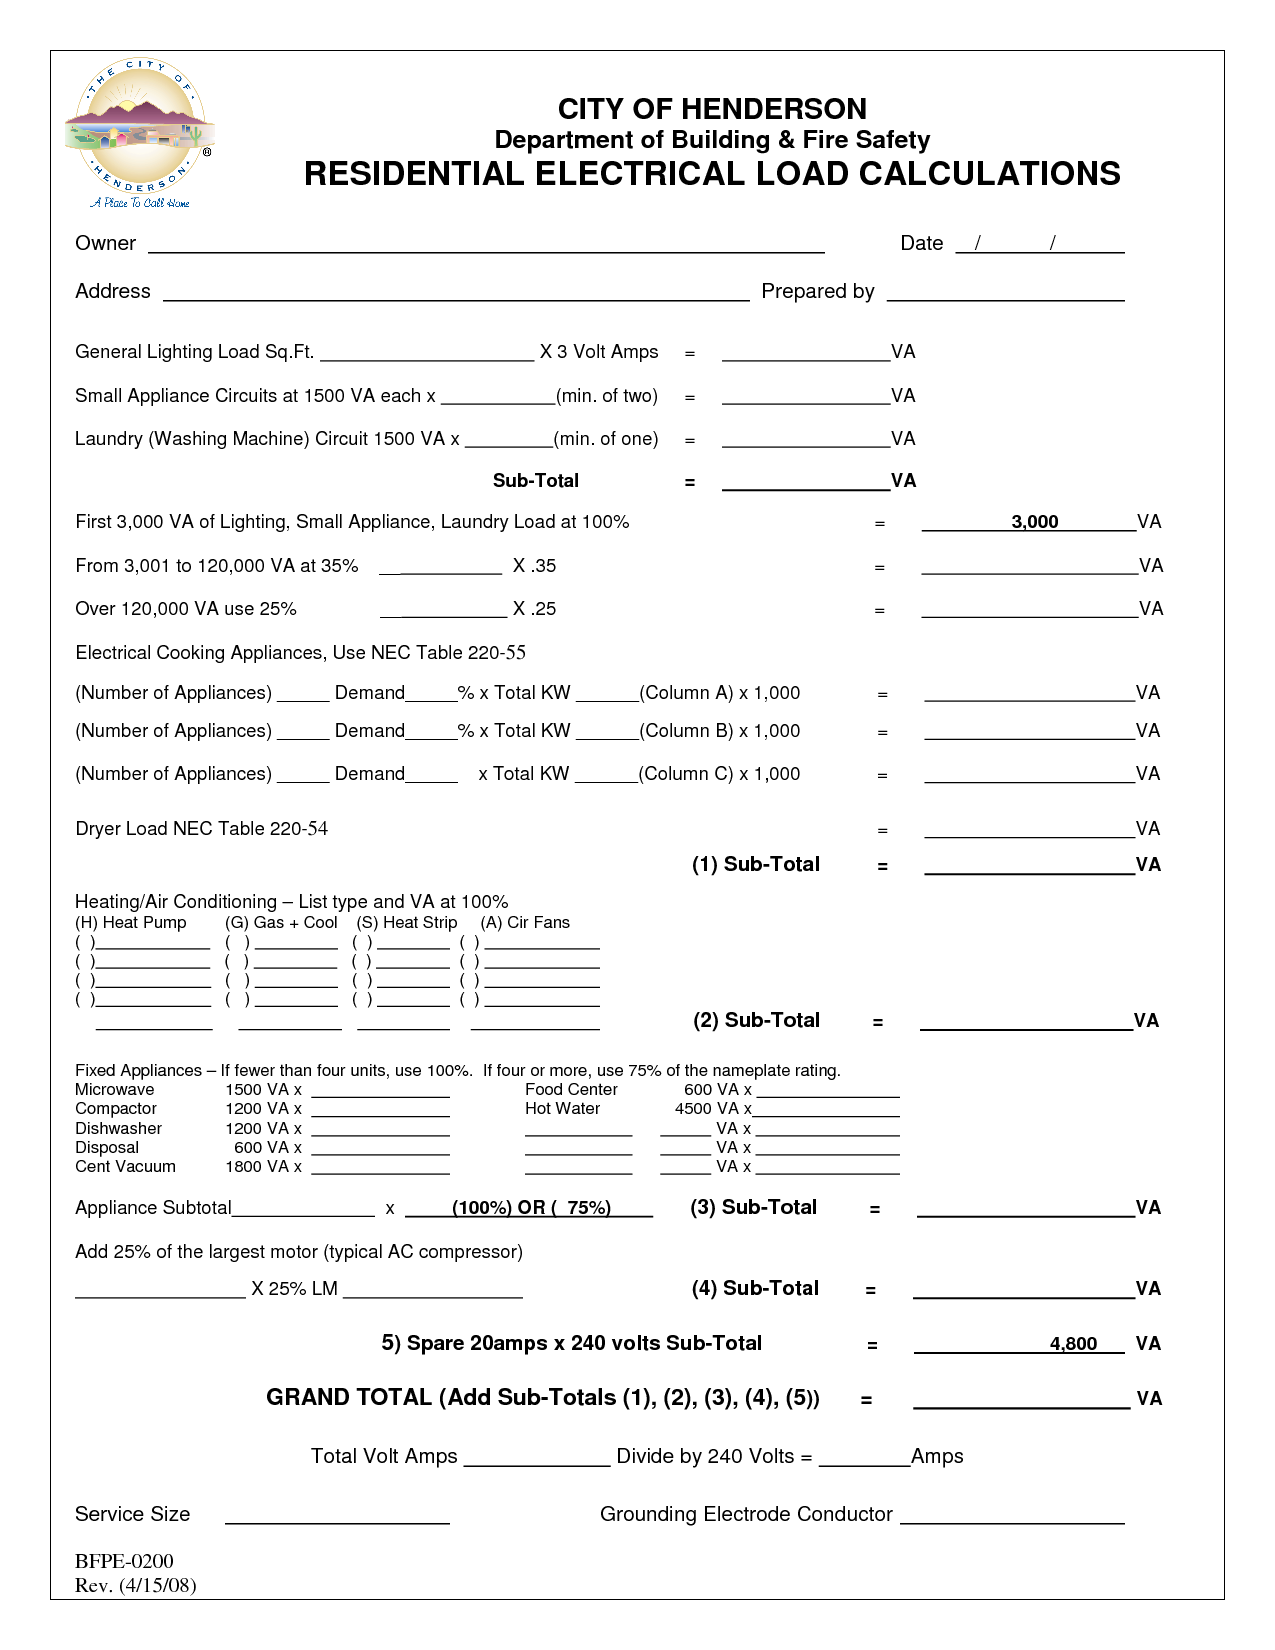 Commercial Electrical Load Calculation Worksheet 006 - Commercial Electrical Load Calculation Worksheet